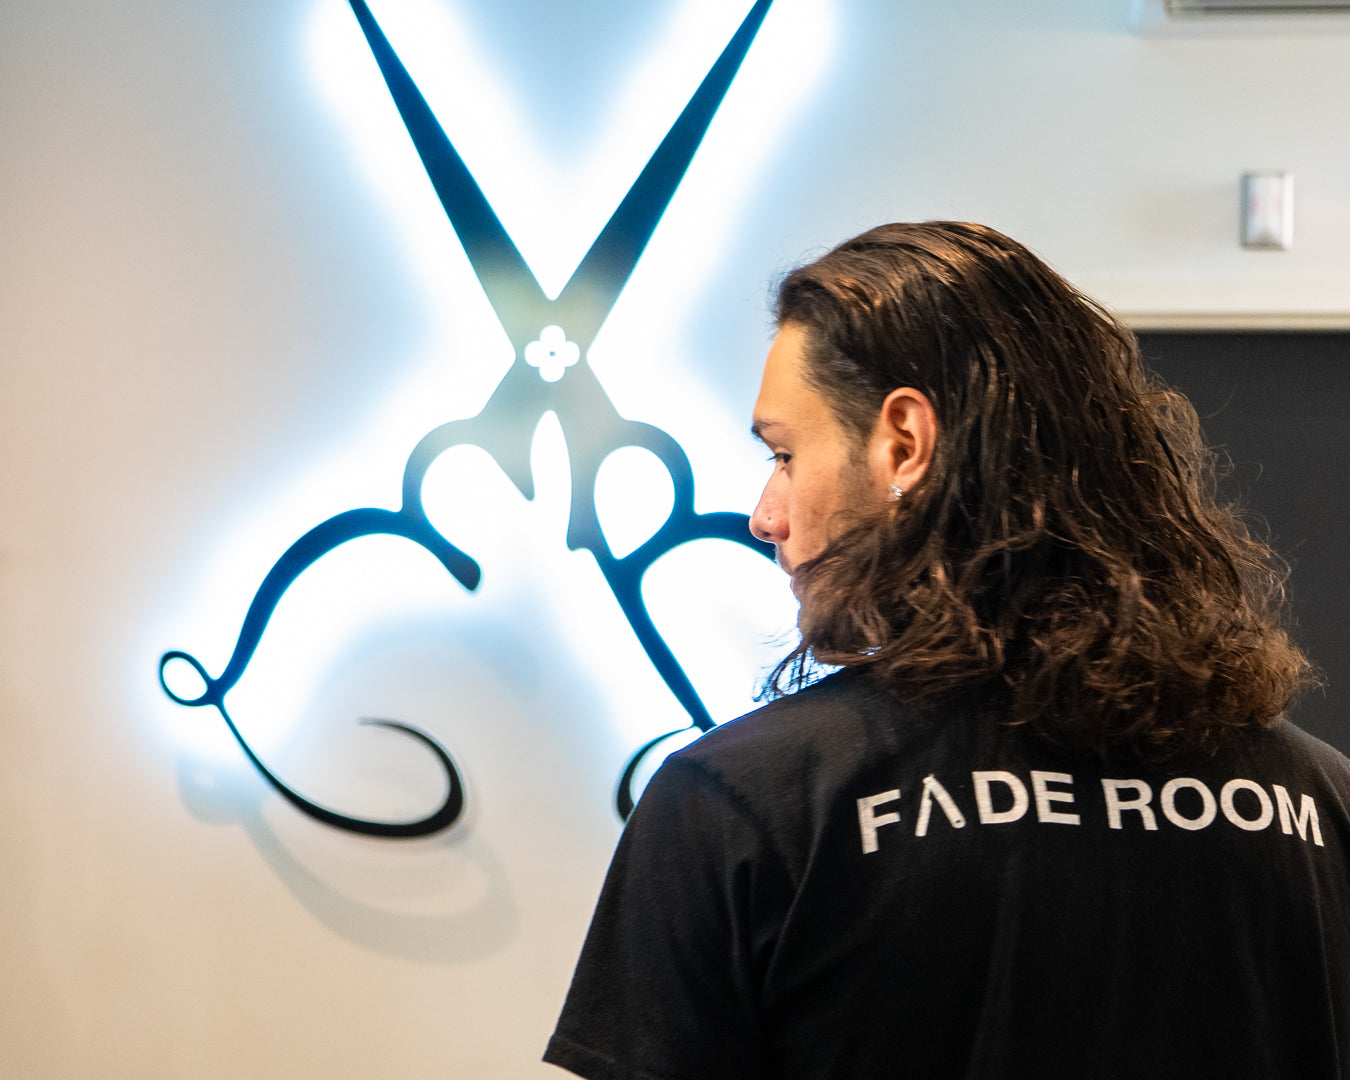 Men's hair donations. How long does your hair to be to donate? Fade Room Toronto